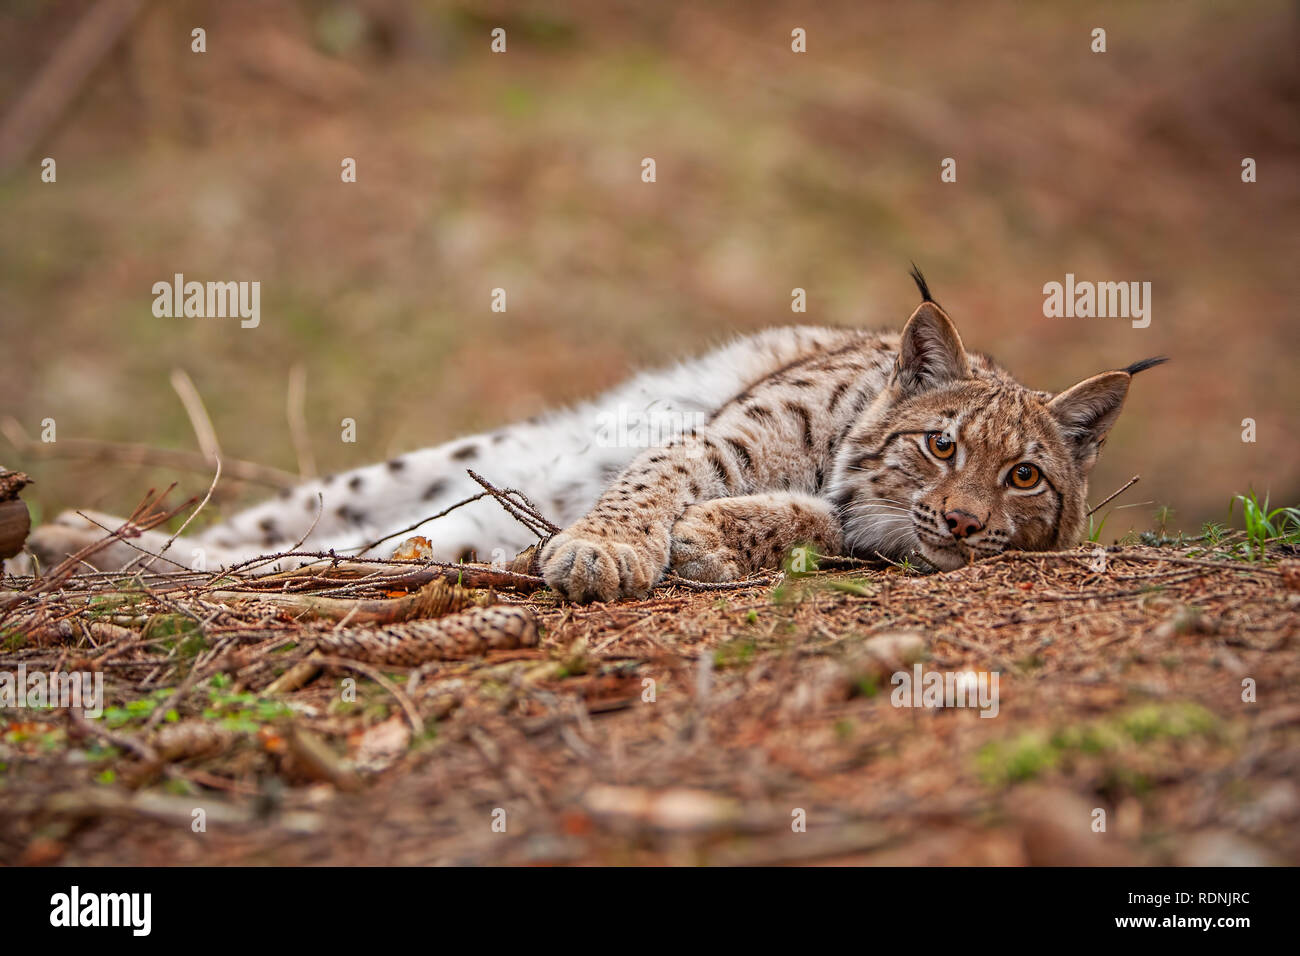 Eursian lynx laying on the ground in autmn forest with blurred background. Stock Photo